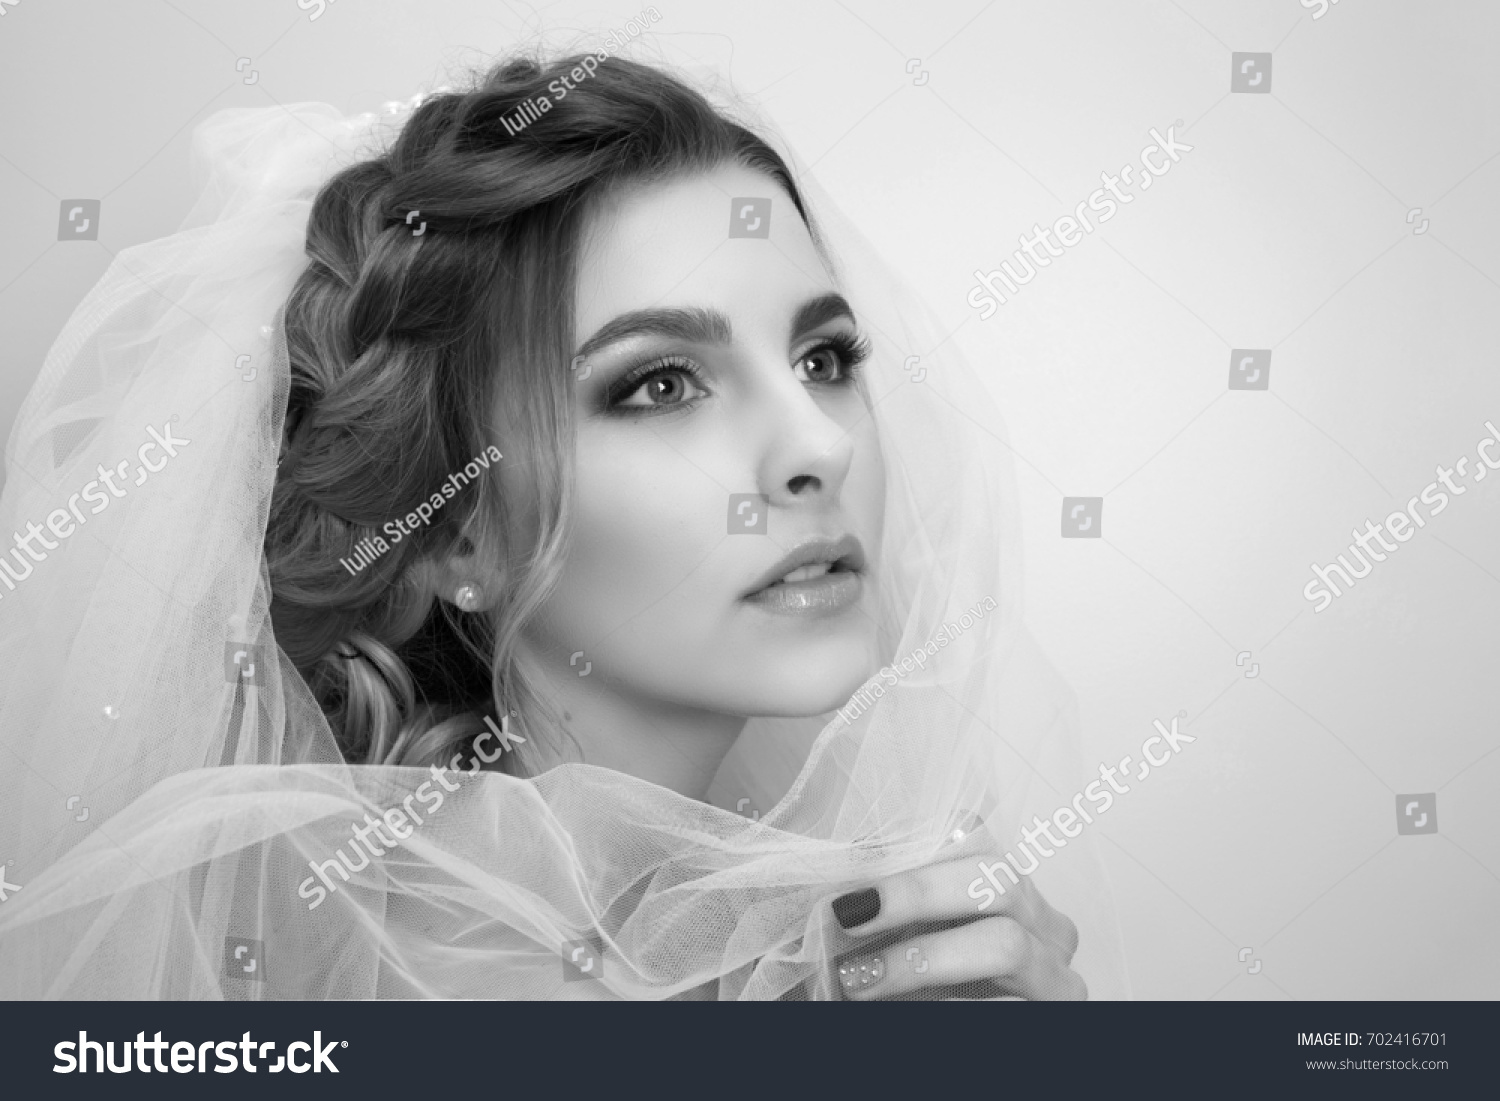 Beautiful young woman bride with wedding hairstyle portrait on a light background in pastel colors